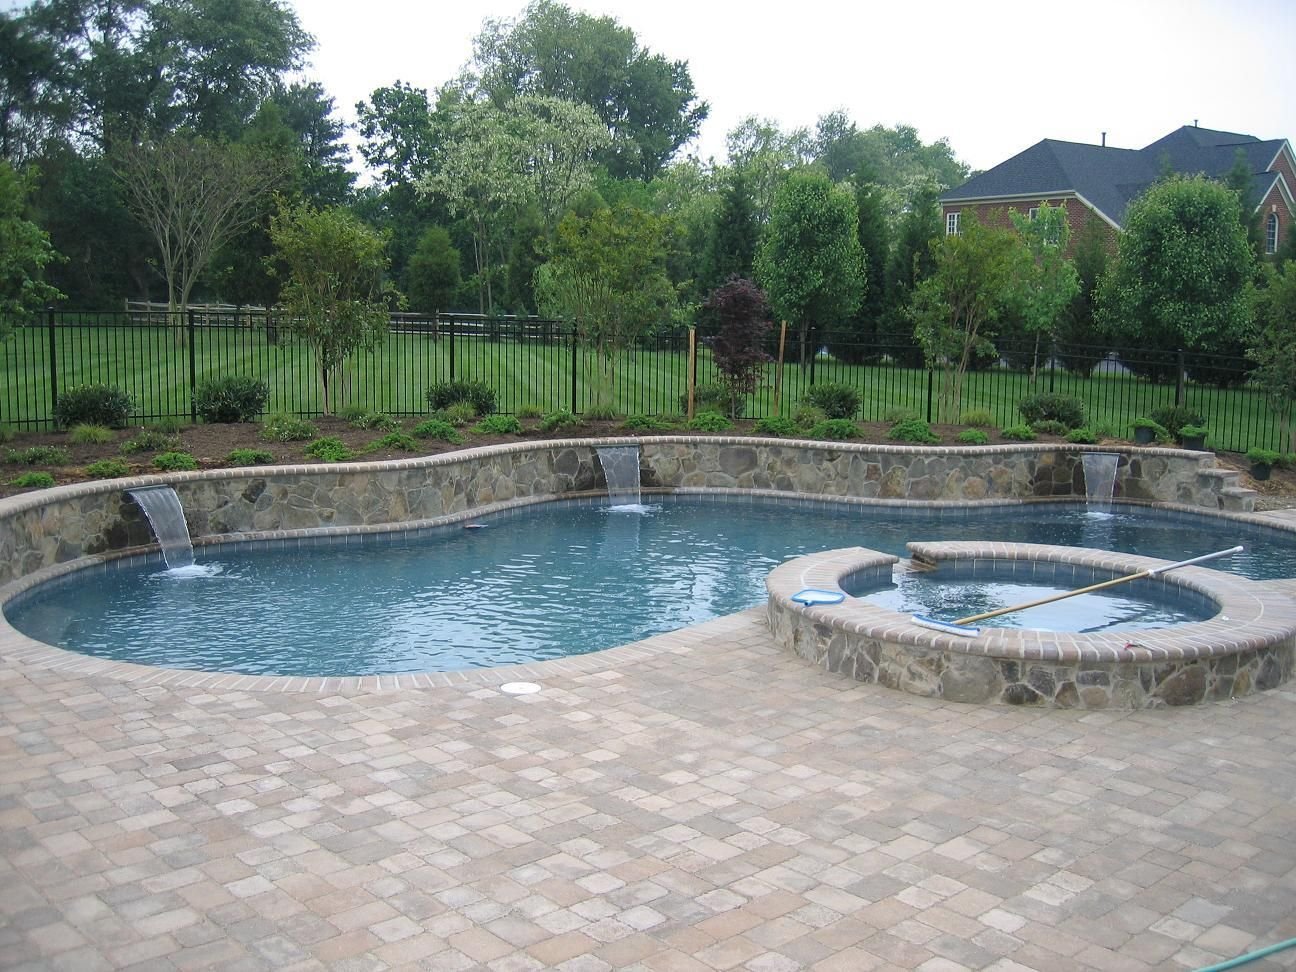 Low spa pools and decks pinterest spa outdoor living and decking exterior endearing do it yourself pool kits fiberglass swimming pools for sale fiberglass pool kits cheap fiberglass inground pools inground pools kits do solutioingenieria Images